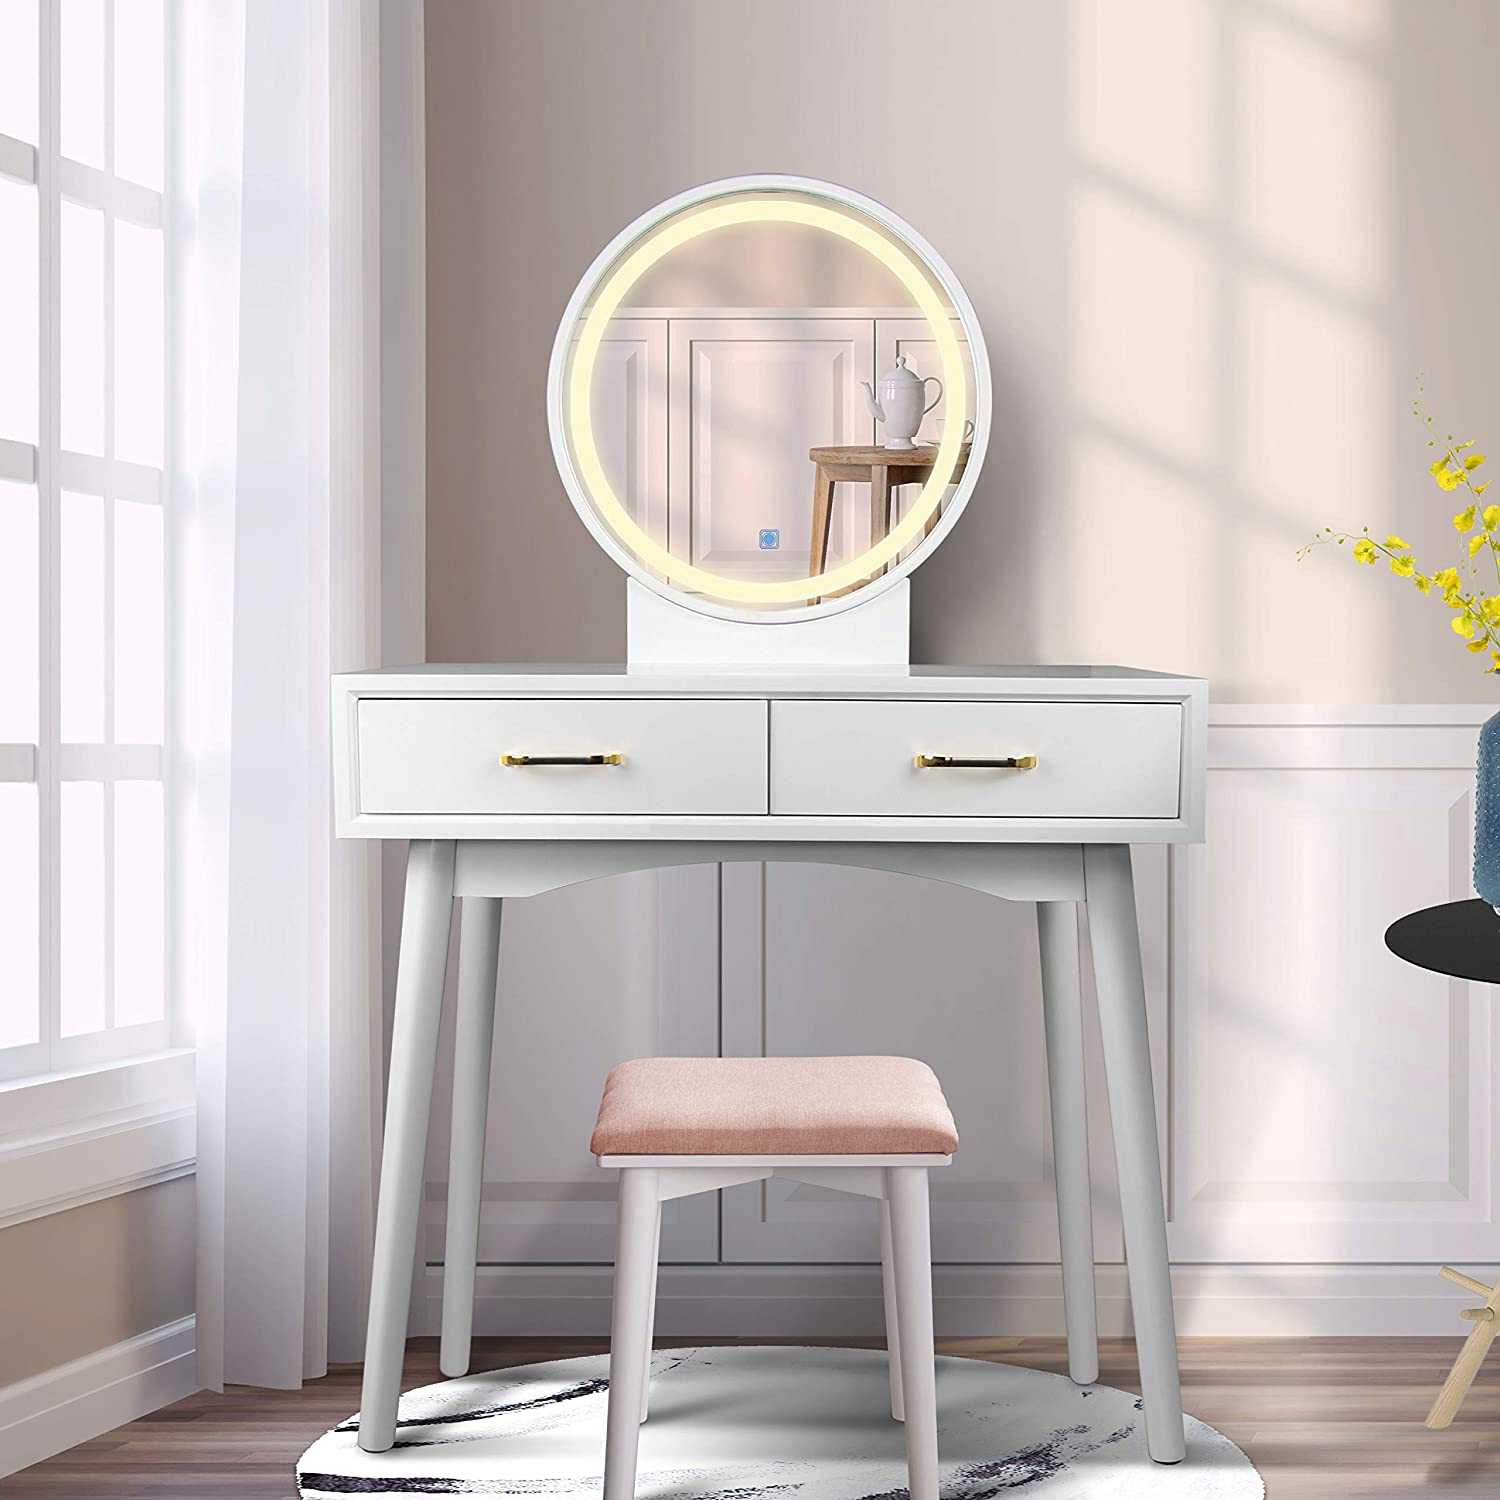 Tabletop Large Vanity Mirror for Dressing Table Round Metal Framed LED Makeup Vanity Mirror,Round AJH with Multi-Function Locker